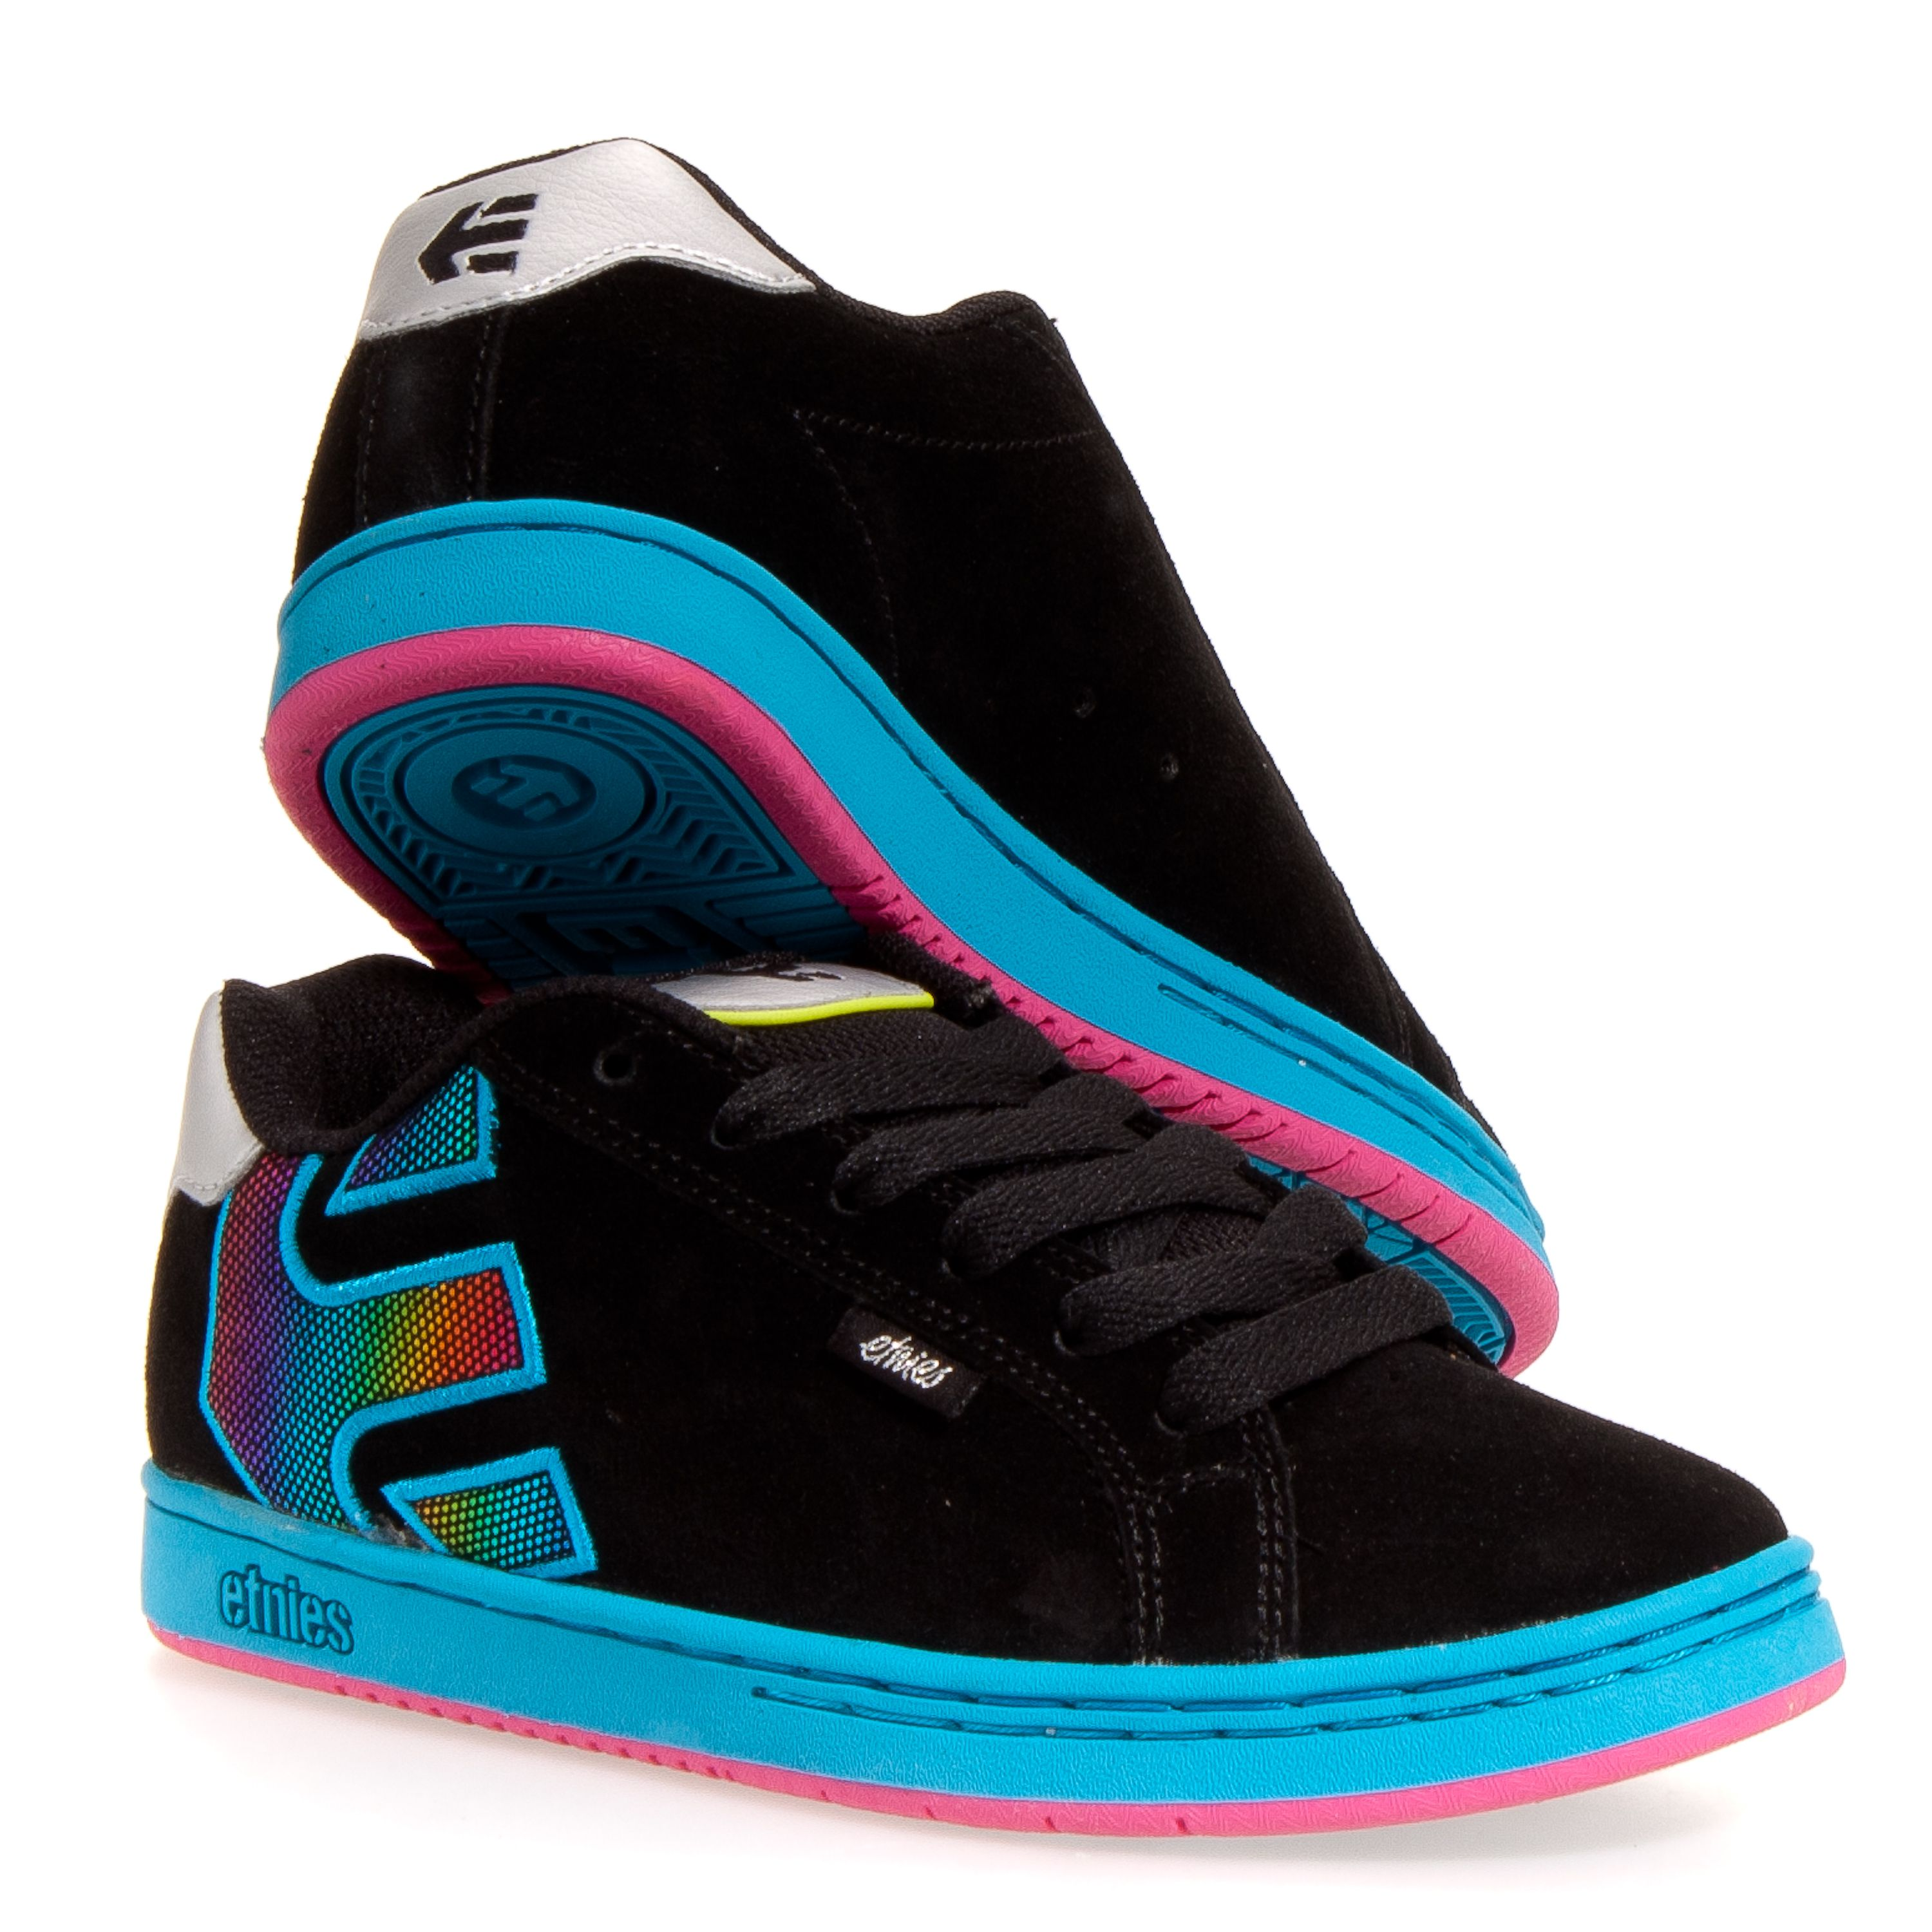 etnies fader w s s skate shoes black 6 5 try